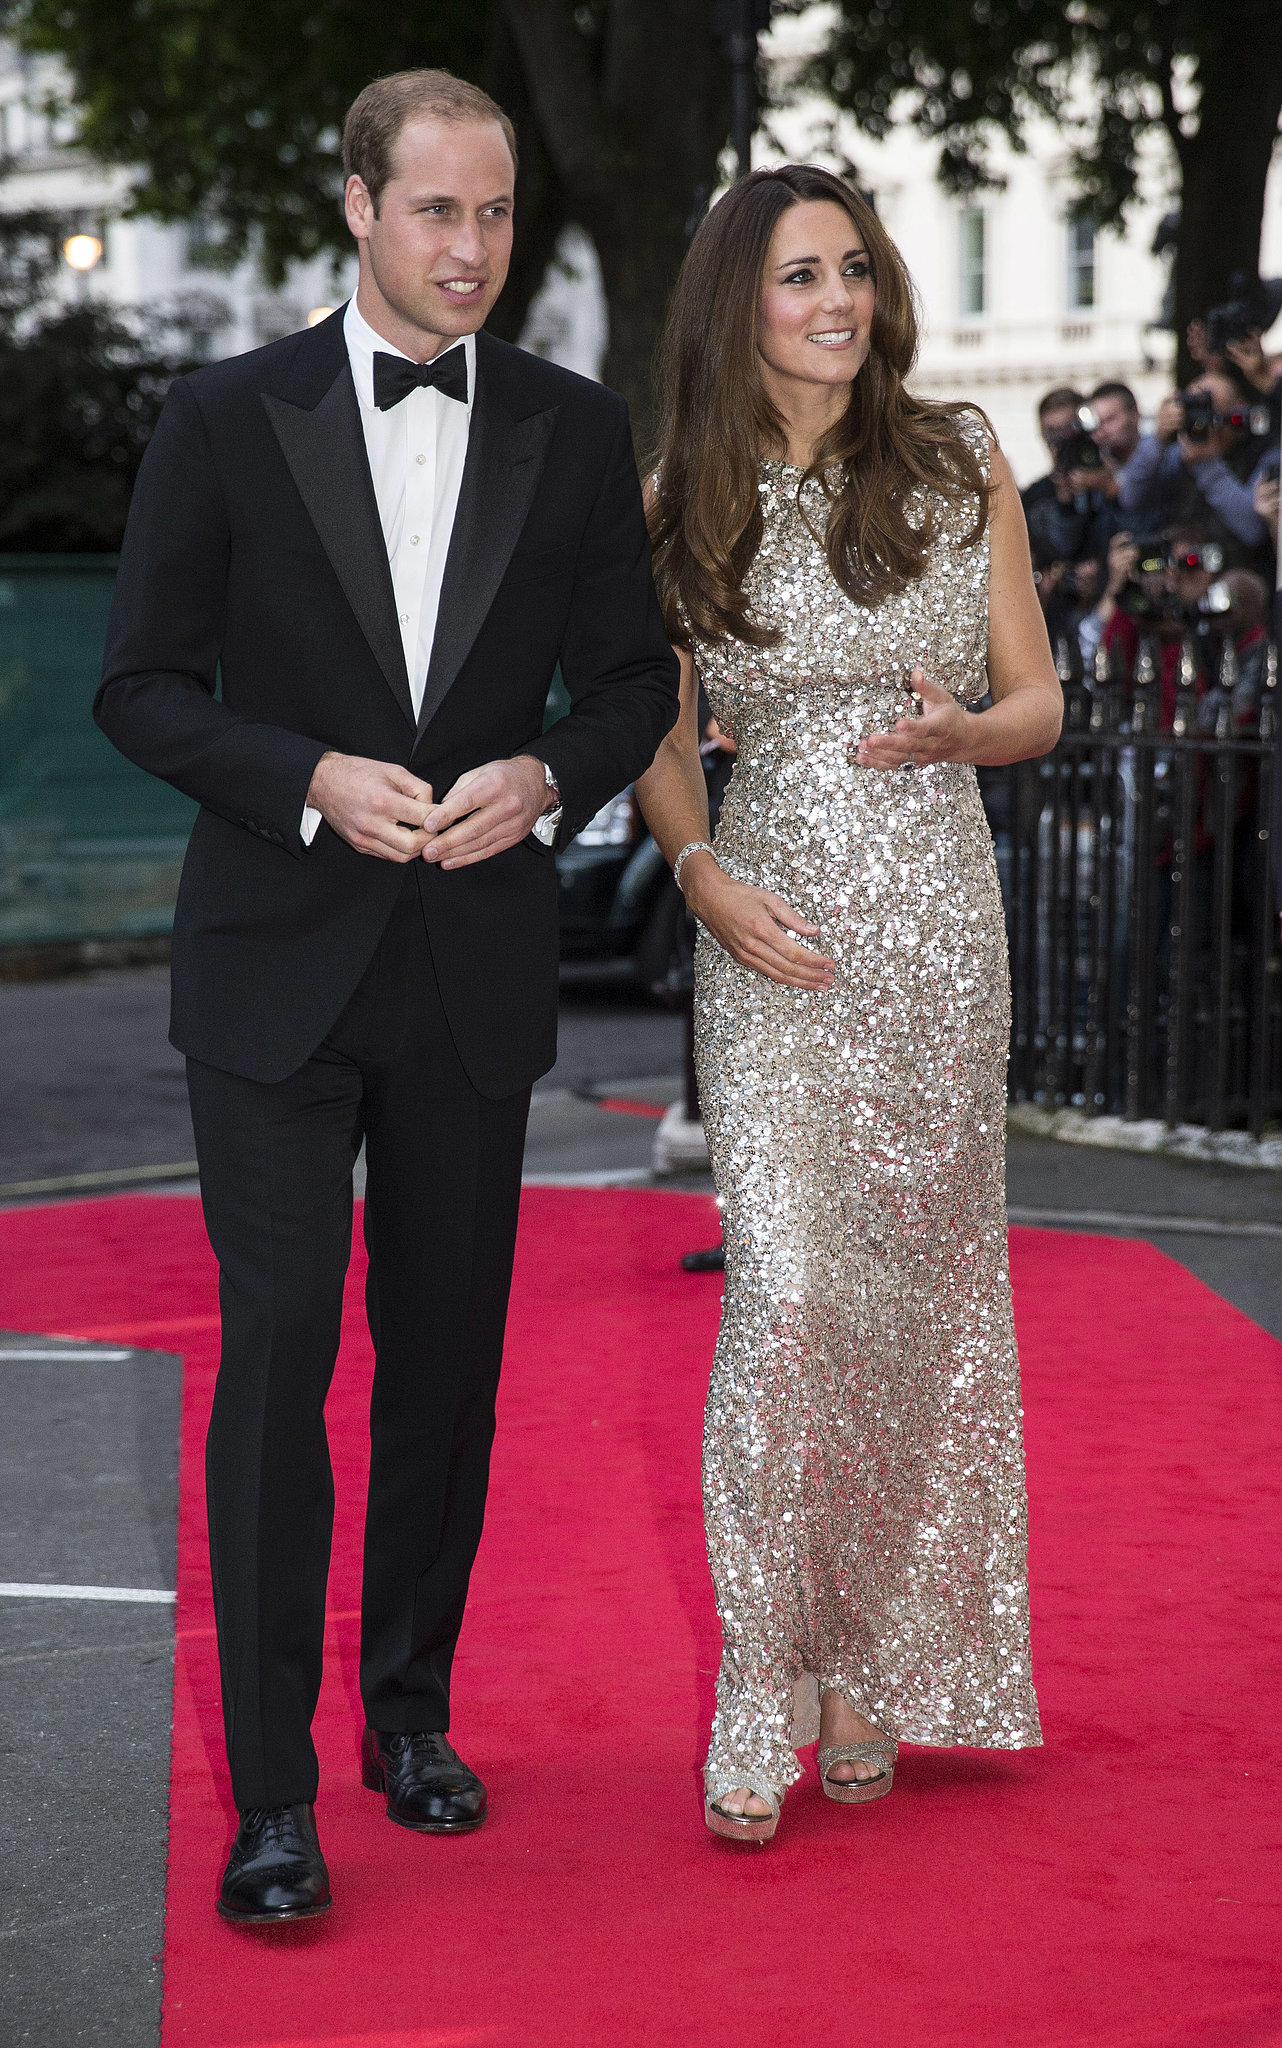 In September 2013, Kate wore a Jenny Packham gown for a night out with Prince William at the Tusk Conservation Awards in London.